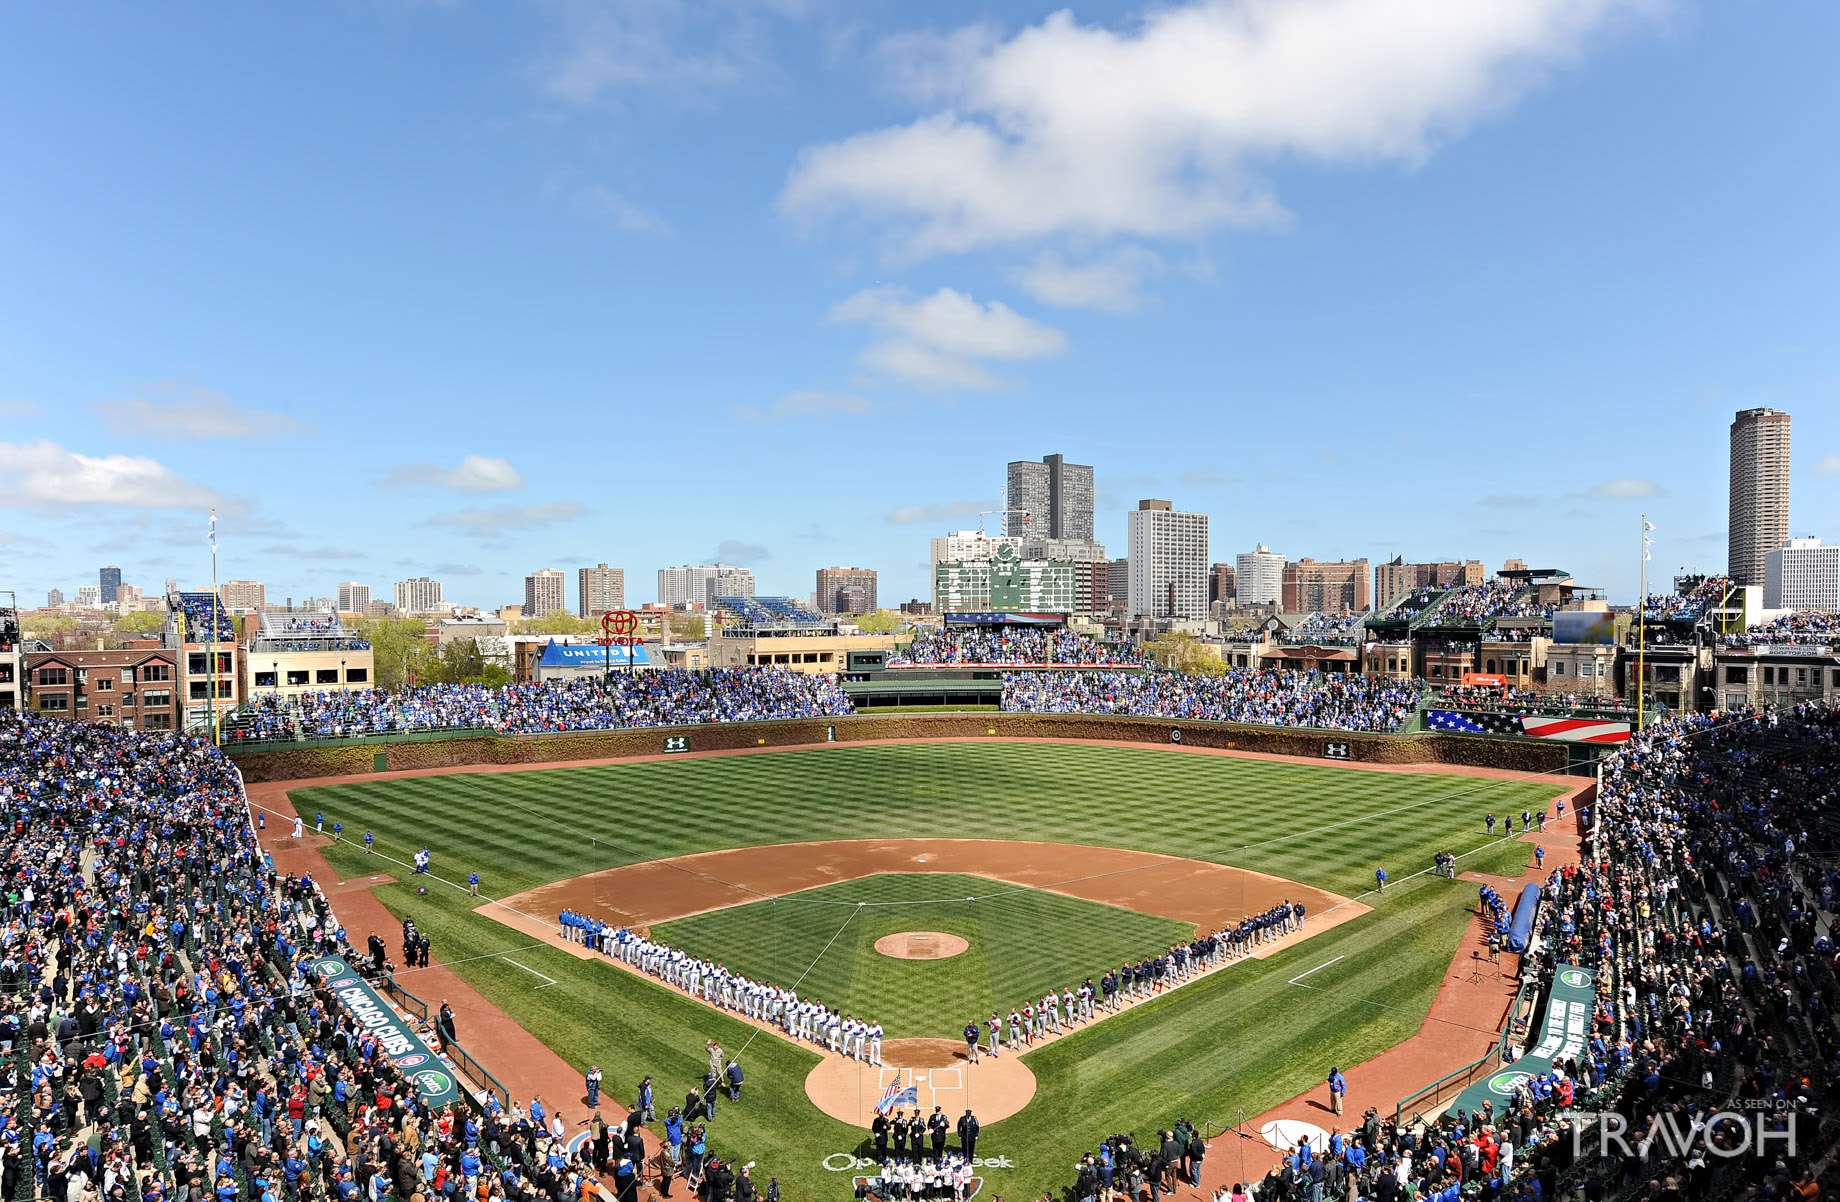 Wrigley Field Chicago Cubs - 1060 W Addison St, Chicago, IL 60613